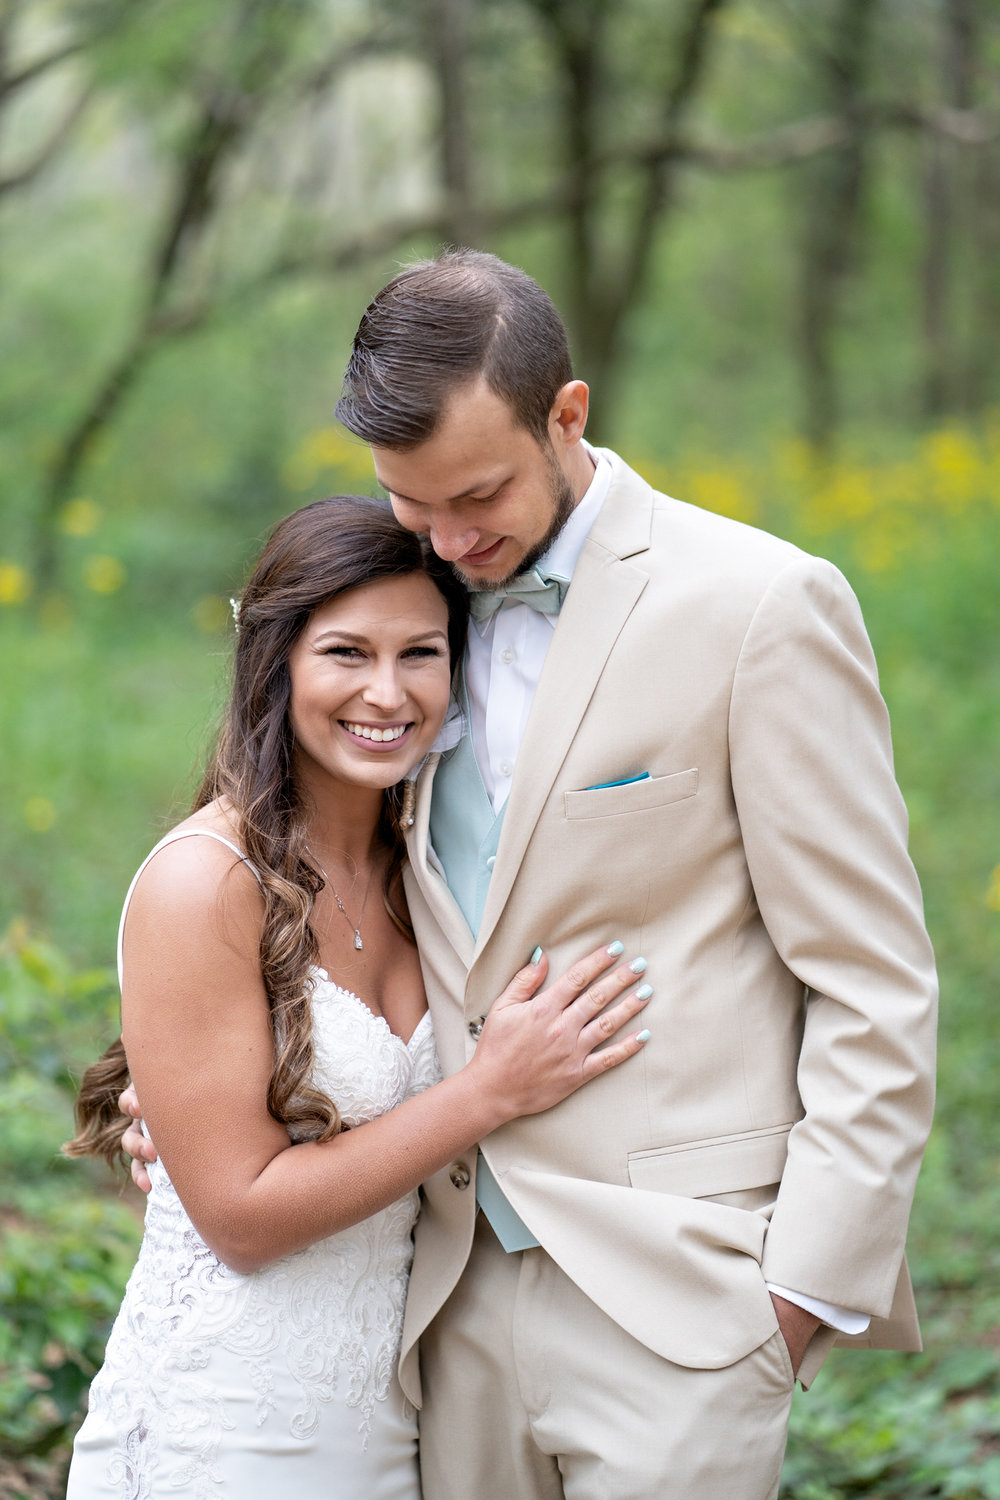 Fairhope-Alabama-Wedding-Photographers-Nick-Drollette-Photography-144.jpg